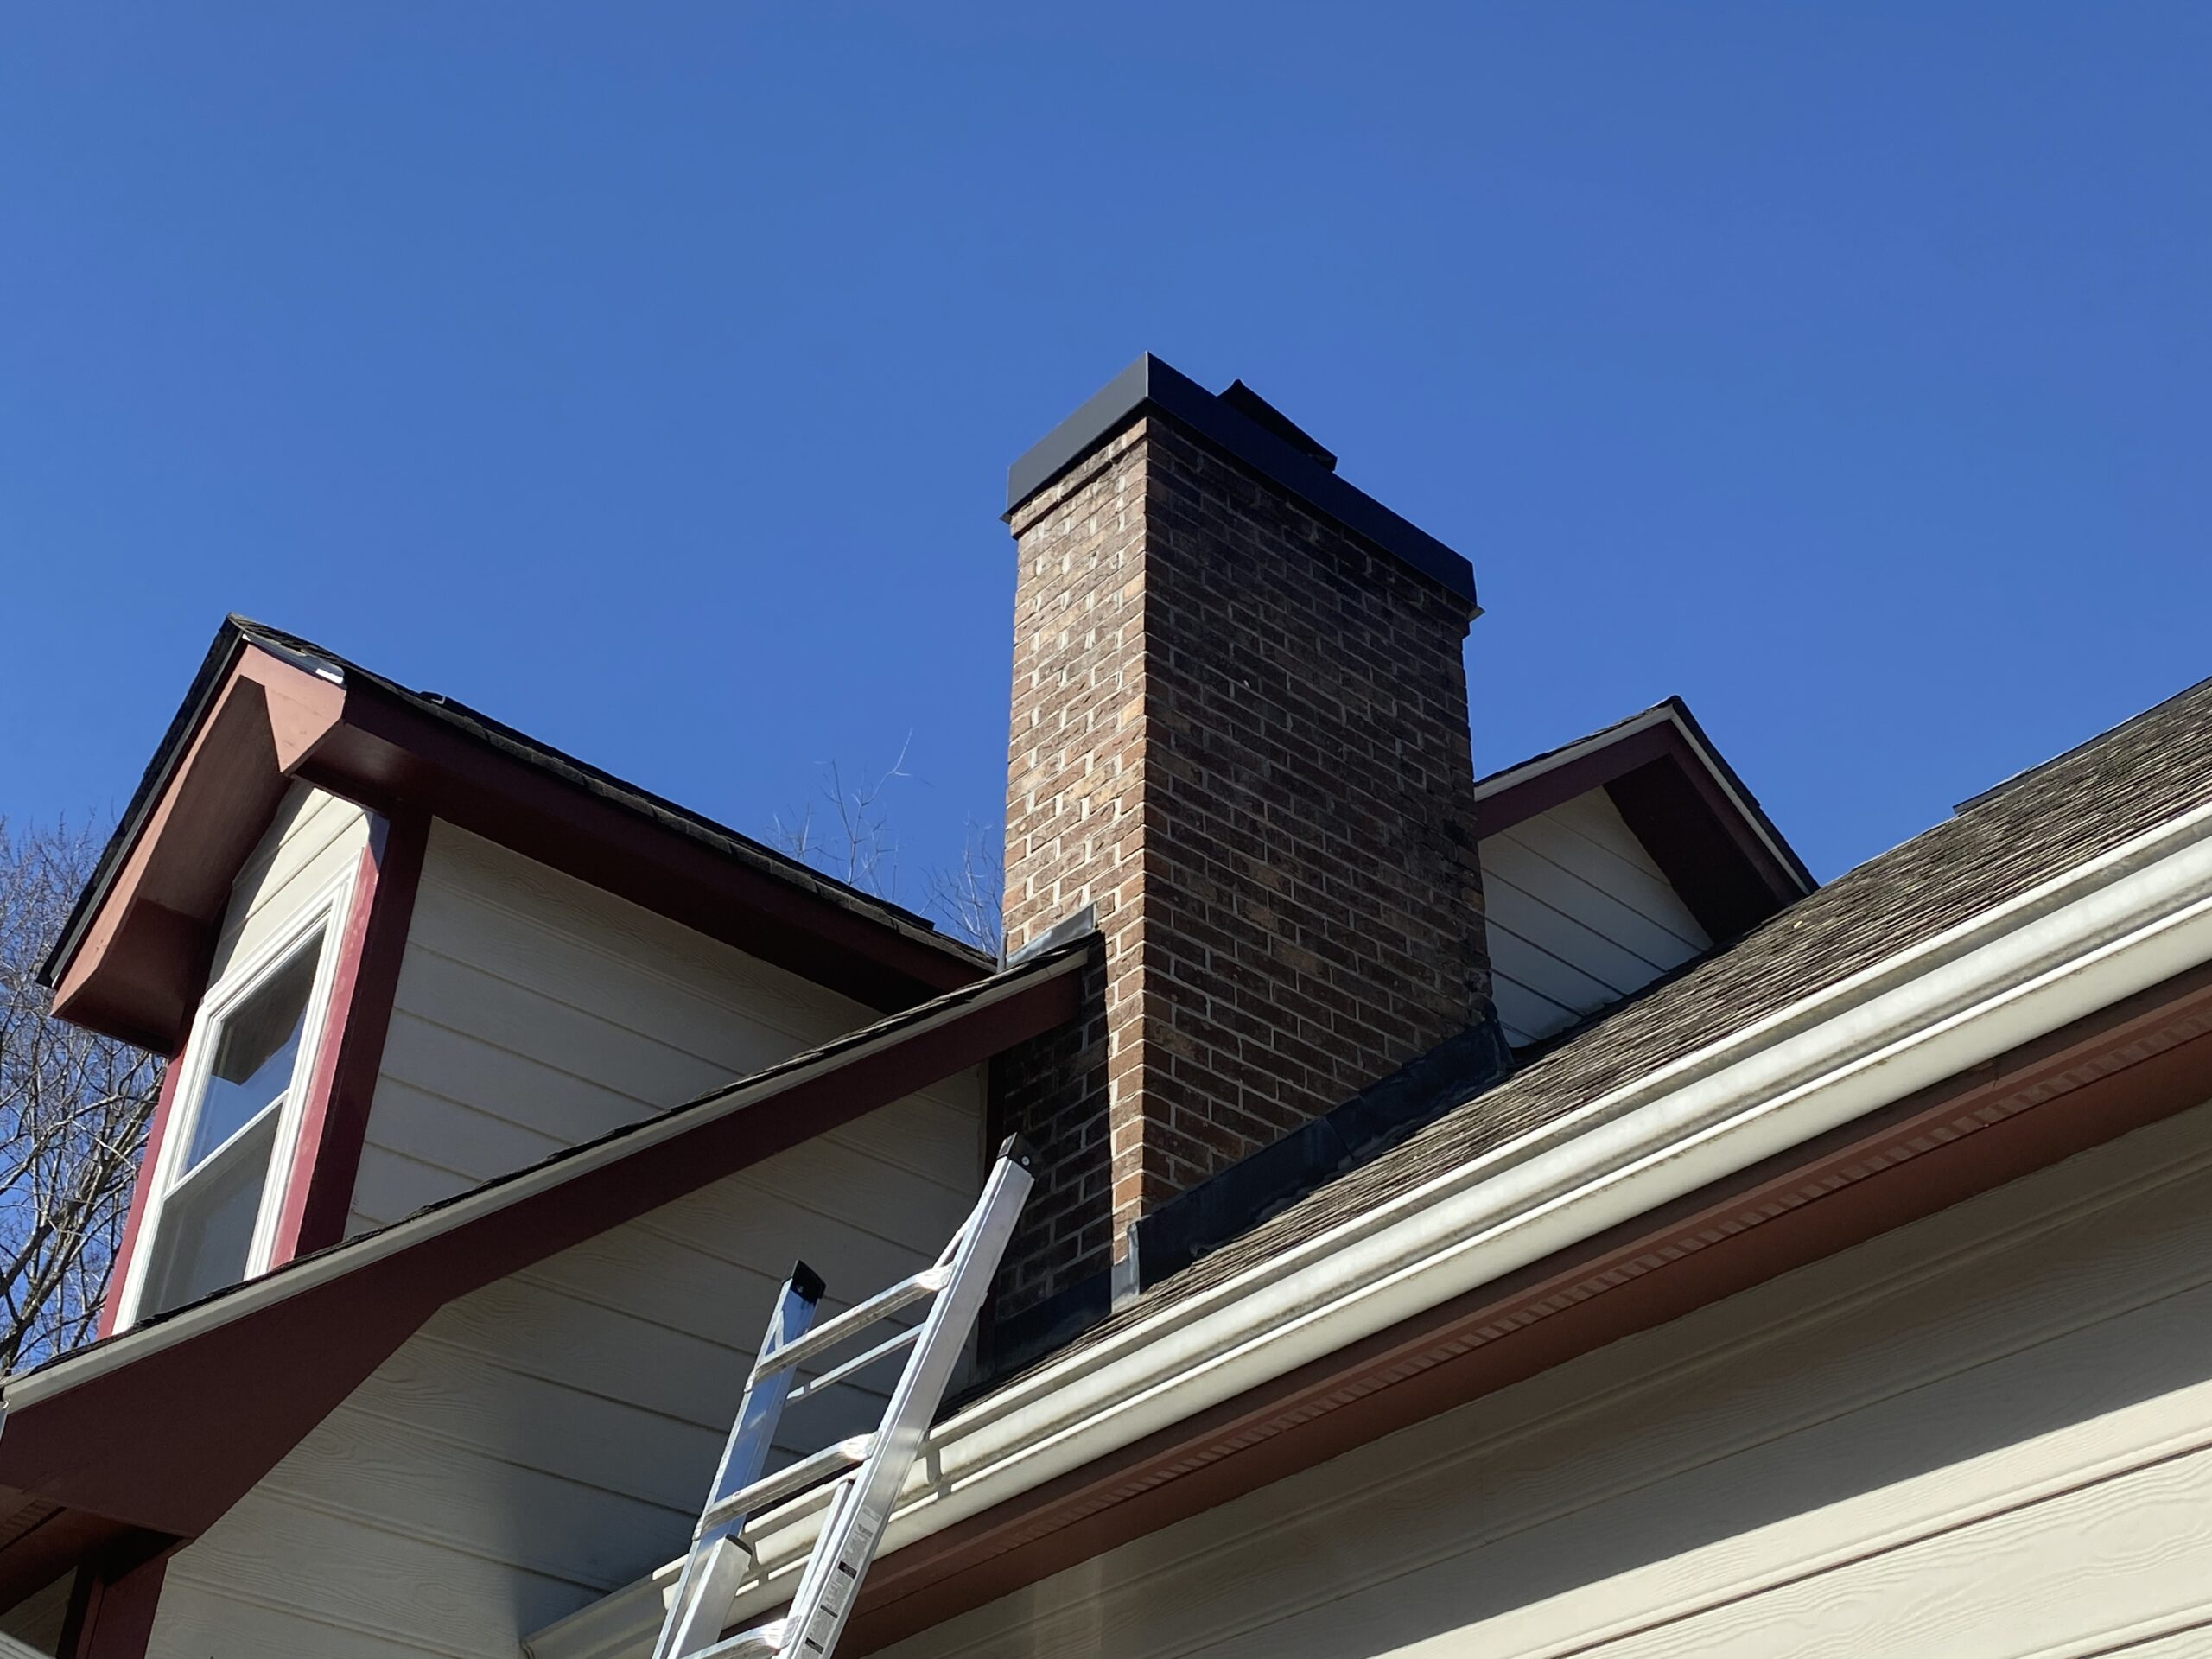 This is a picture of a white and red home with a brick chimney